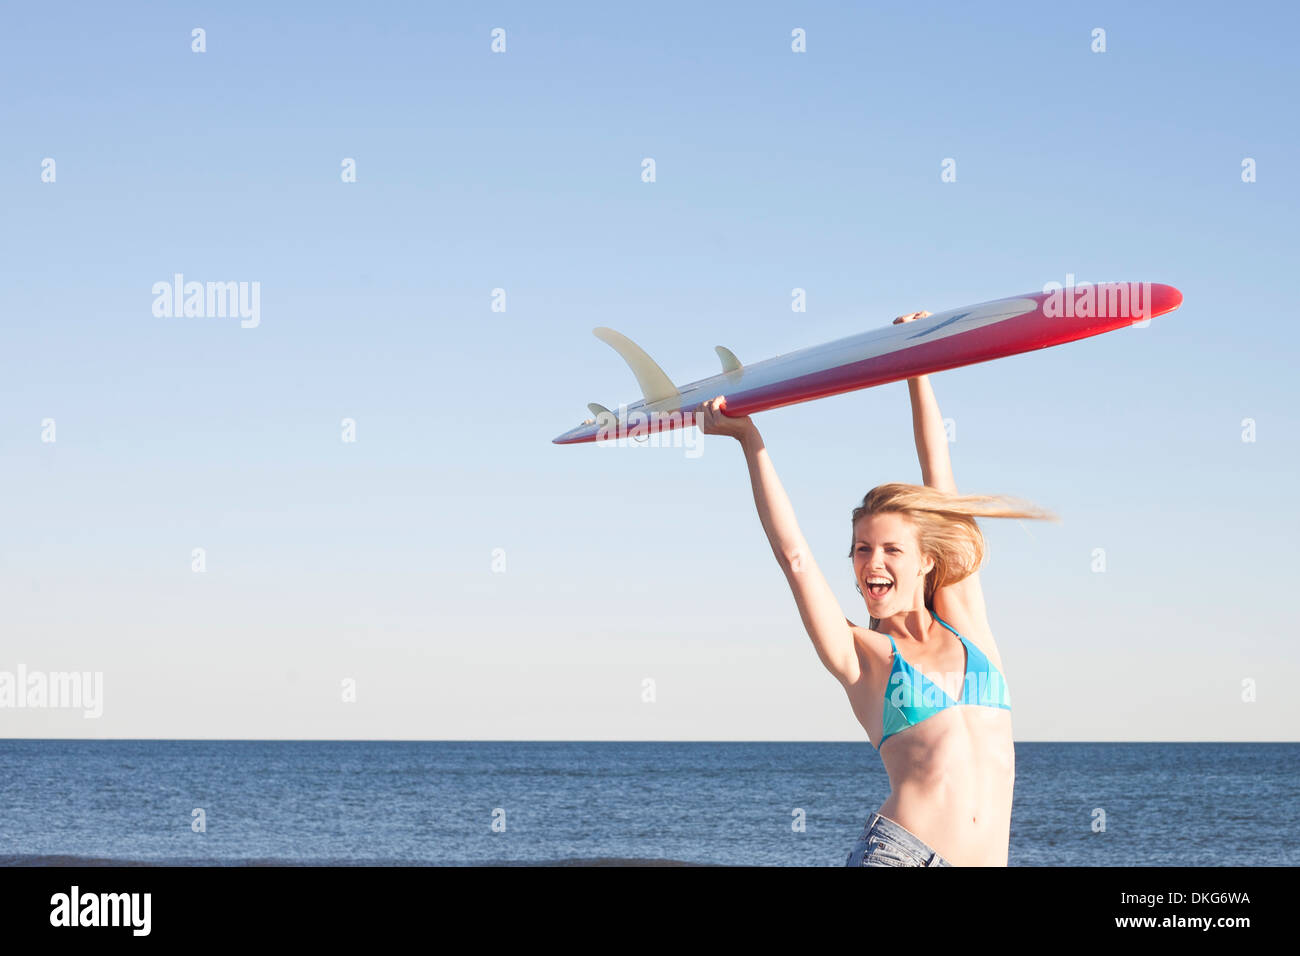 Young woman holding surfboard up, Breezy Point, Queens, New York, USA - Stock Image